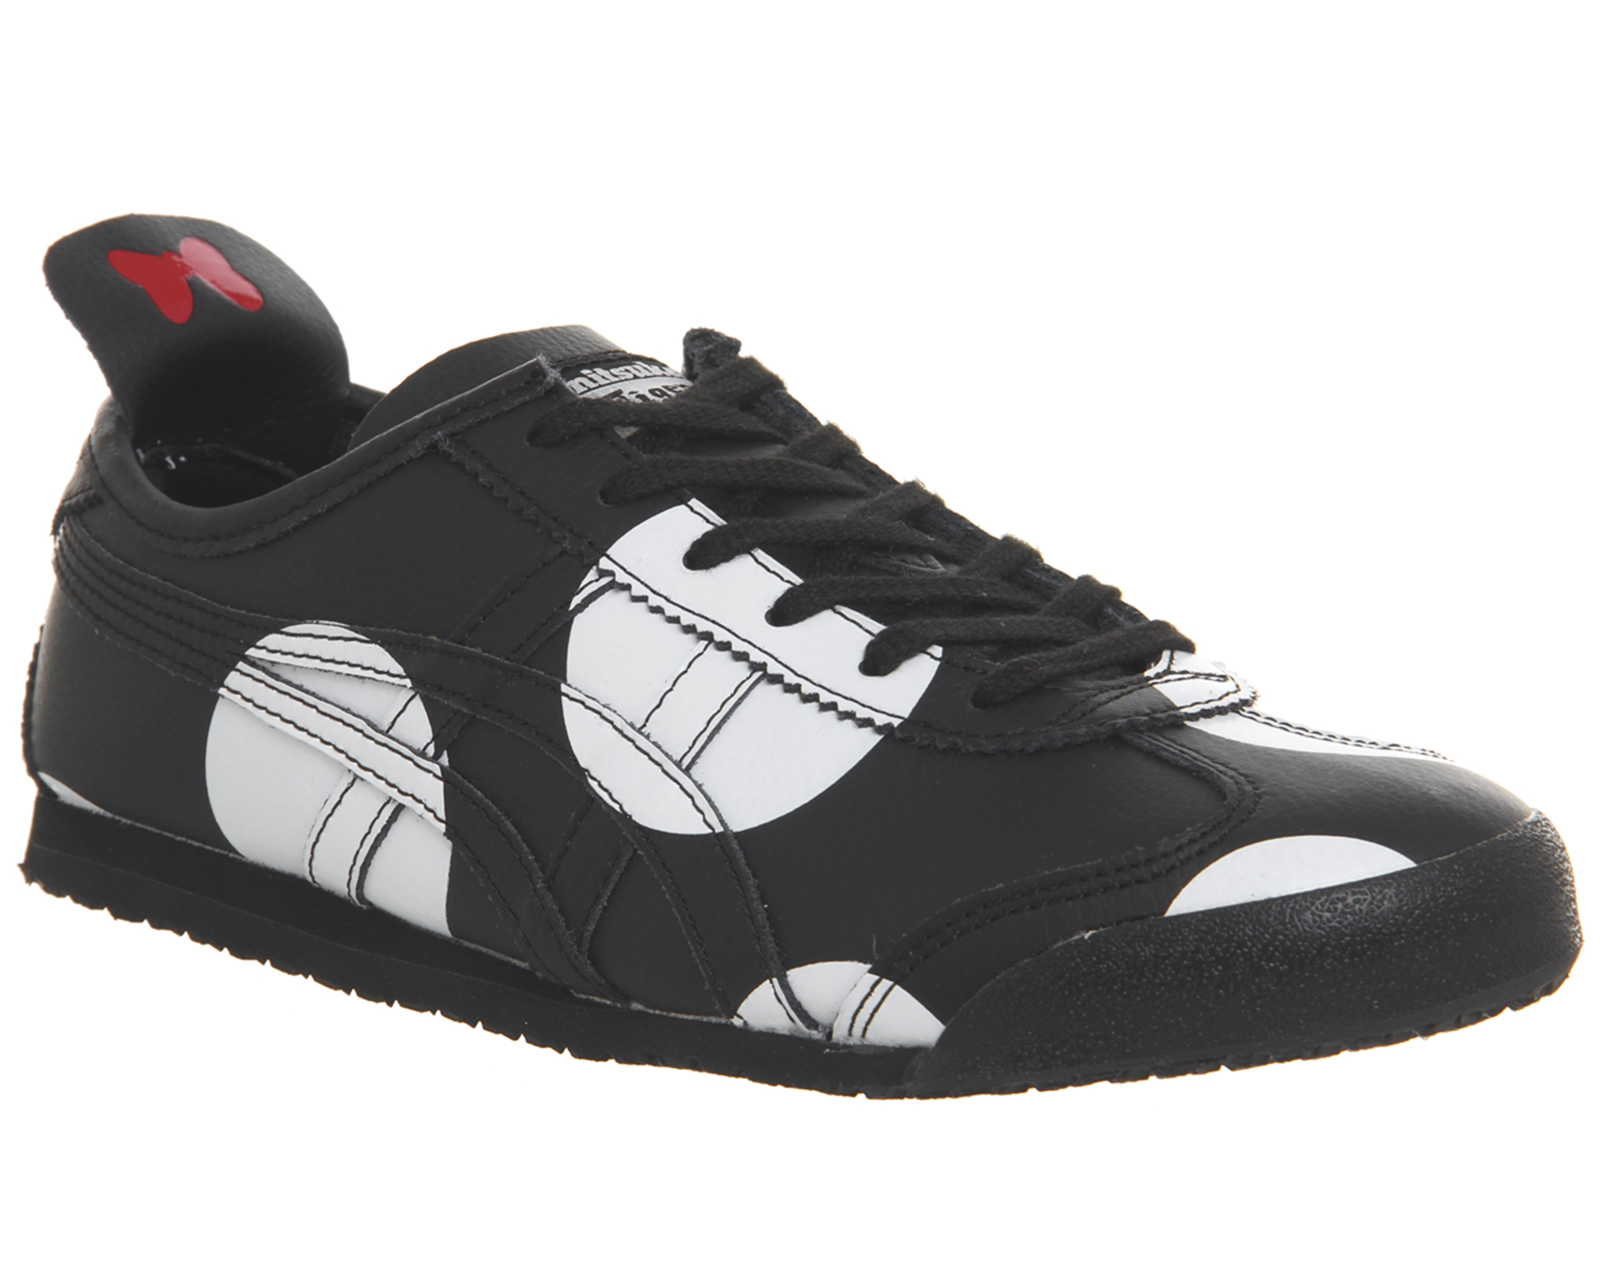 buy popular b4c48 557ae SENTINELLE Womens Onitsuka Tiger Mexico 66 formateurs Minnie Black  formateurs noir chaussures